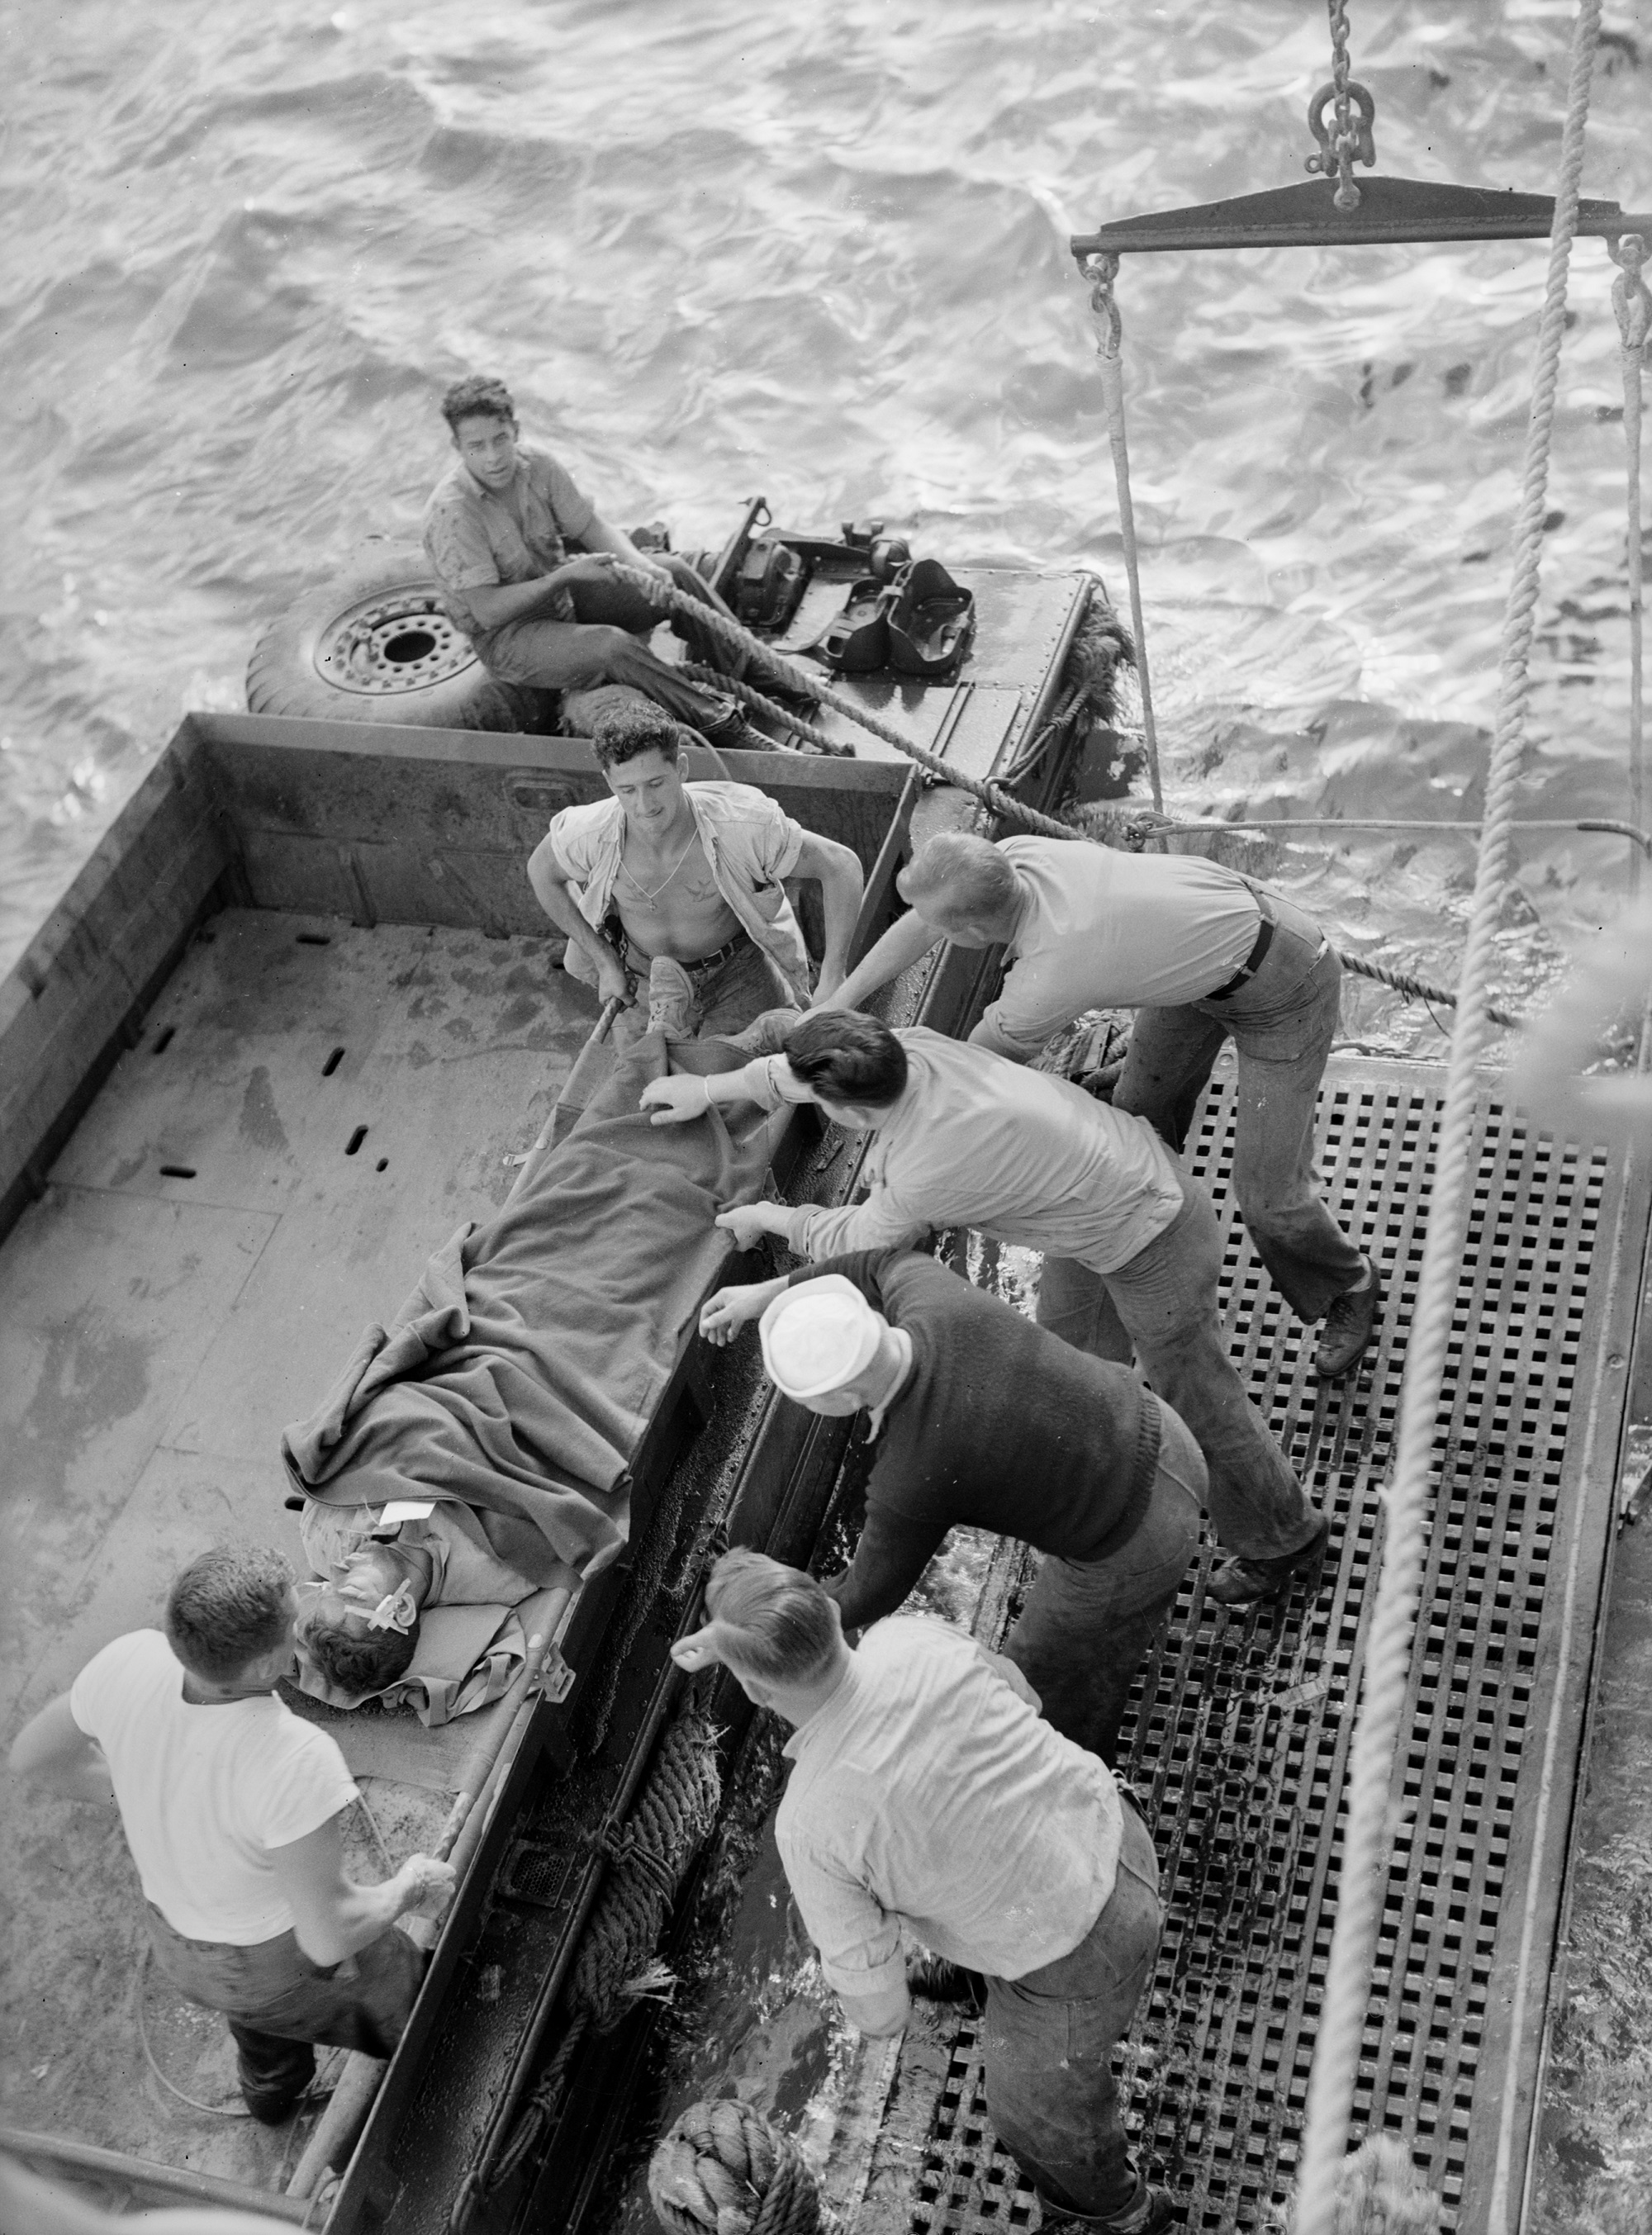 A boat crew off-loads a wounded man onto a hospital ship, 1945. (Wisconsin Historical Images 58816)